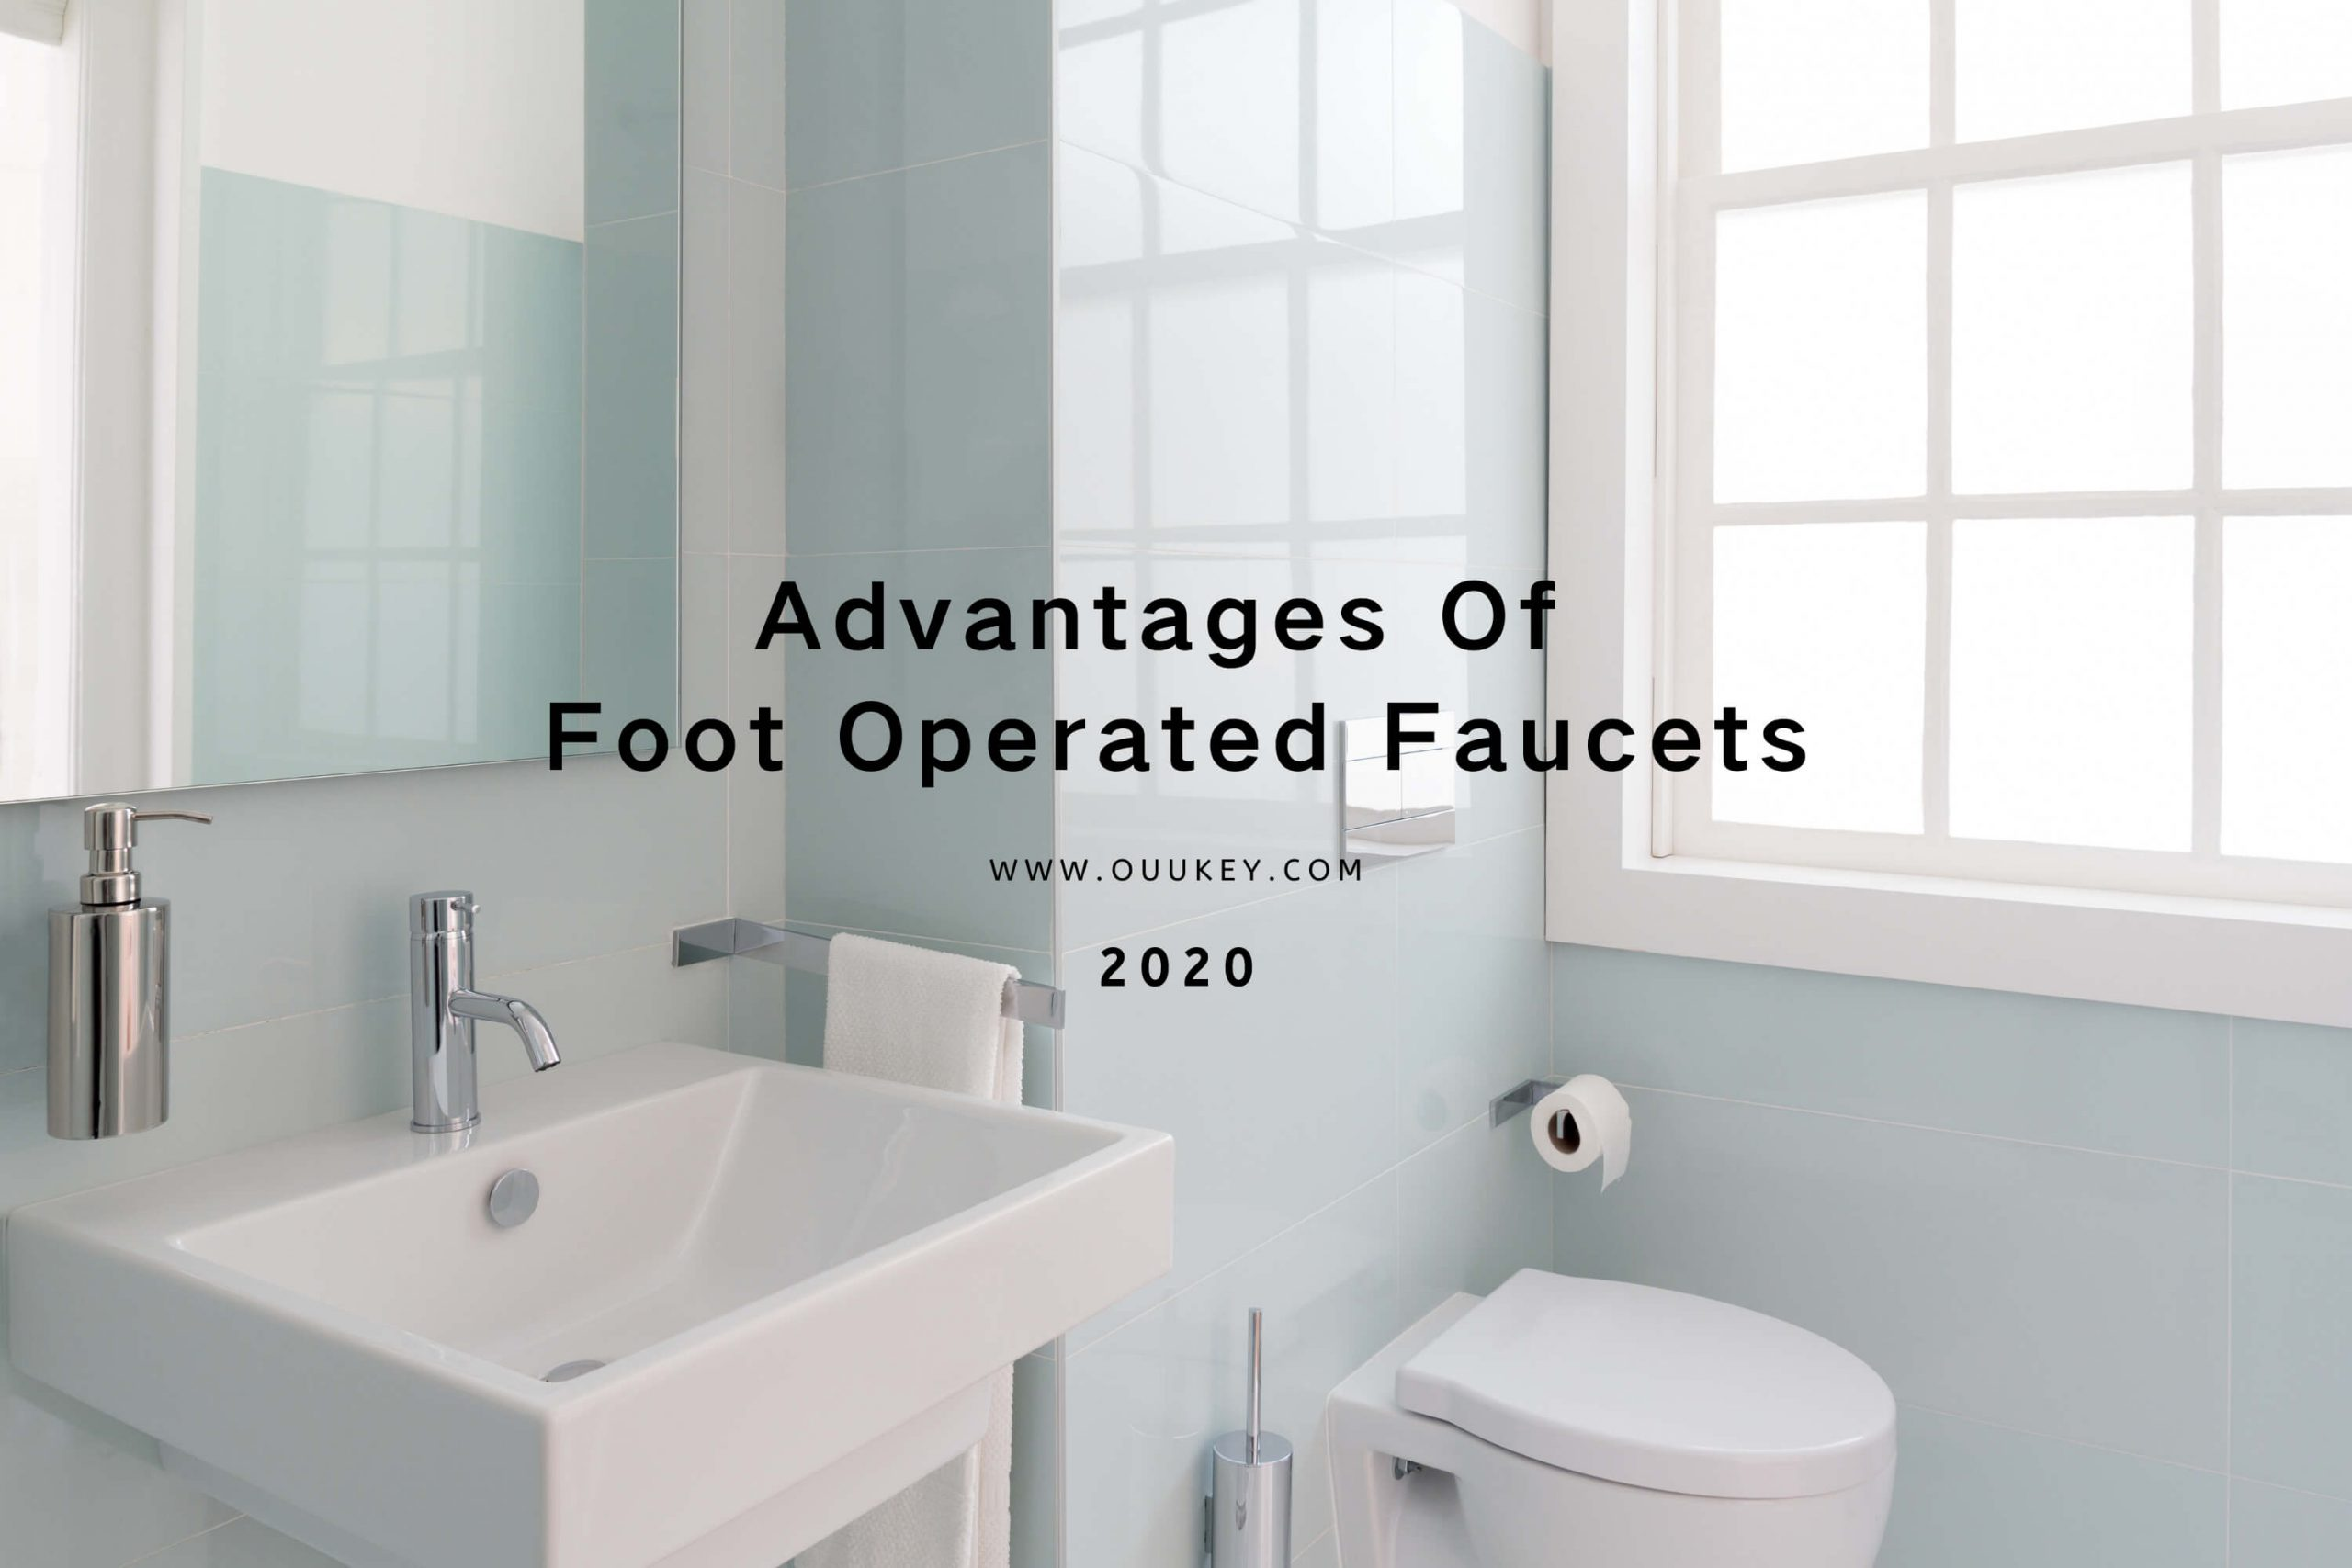 OuuKey Advantages Of Foot Operated Faucets